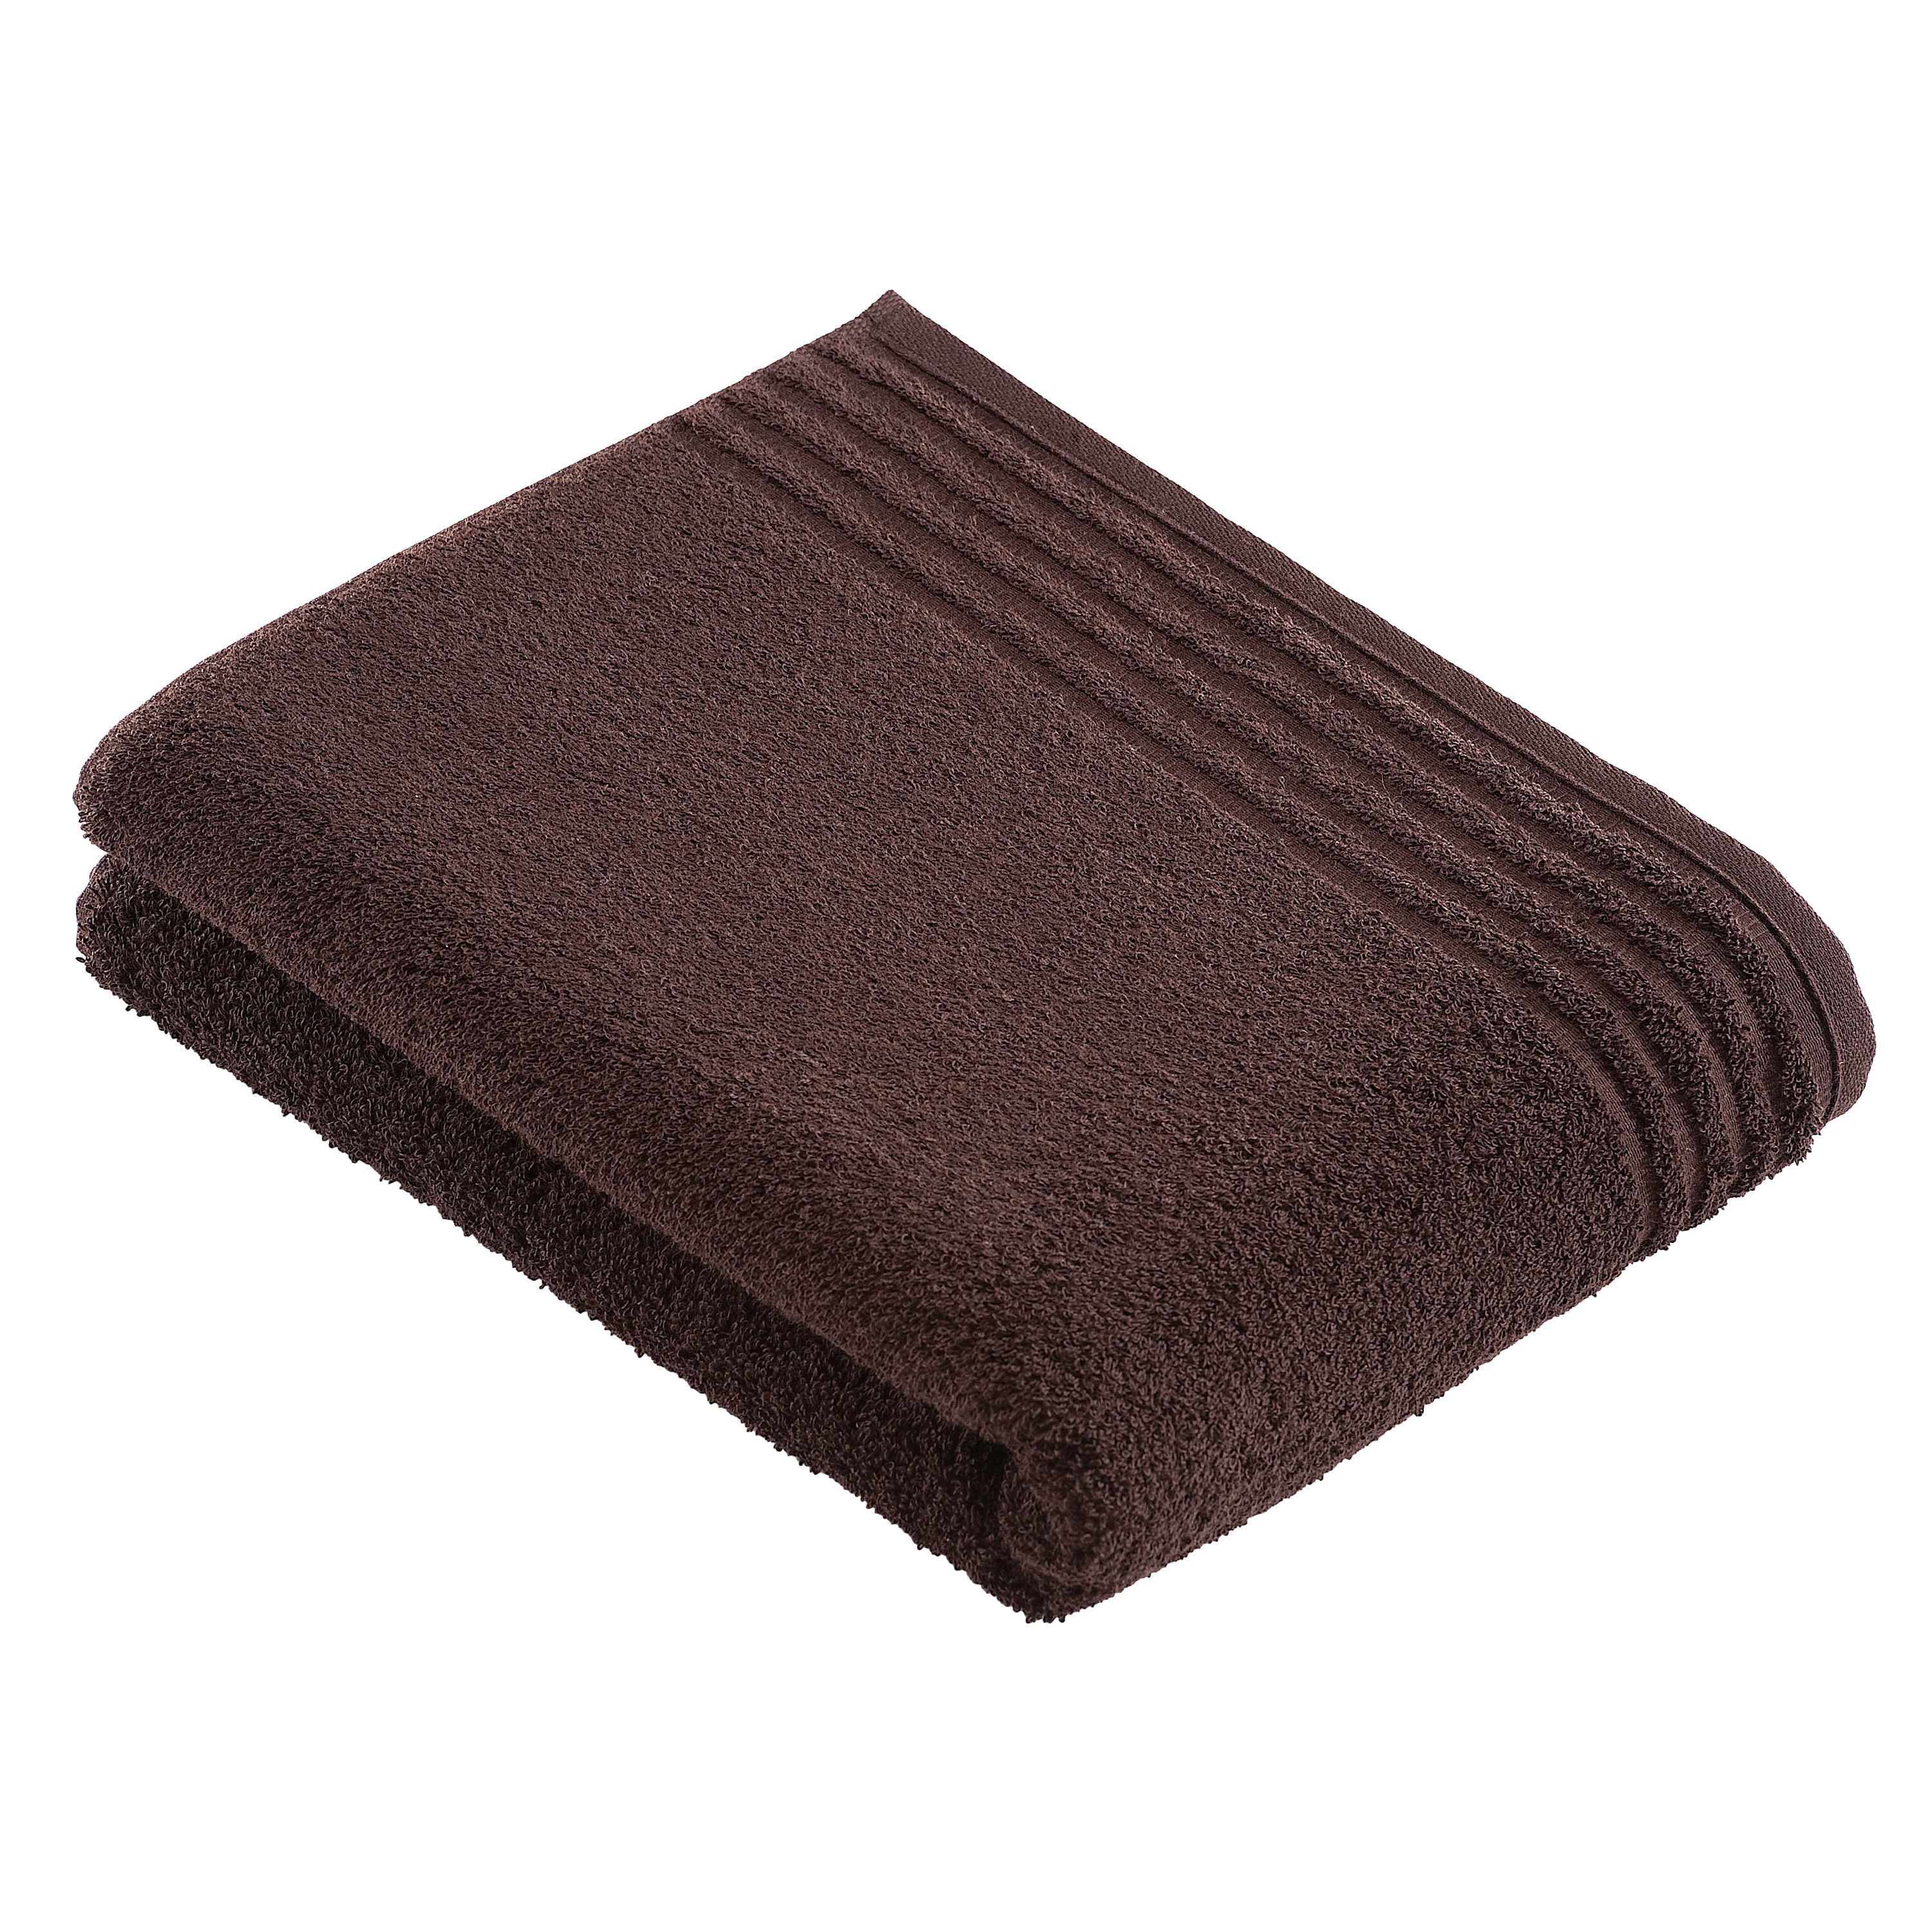 Vienna dark brown towel range